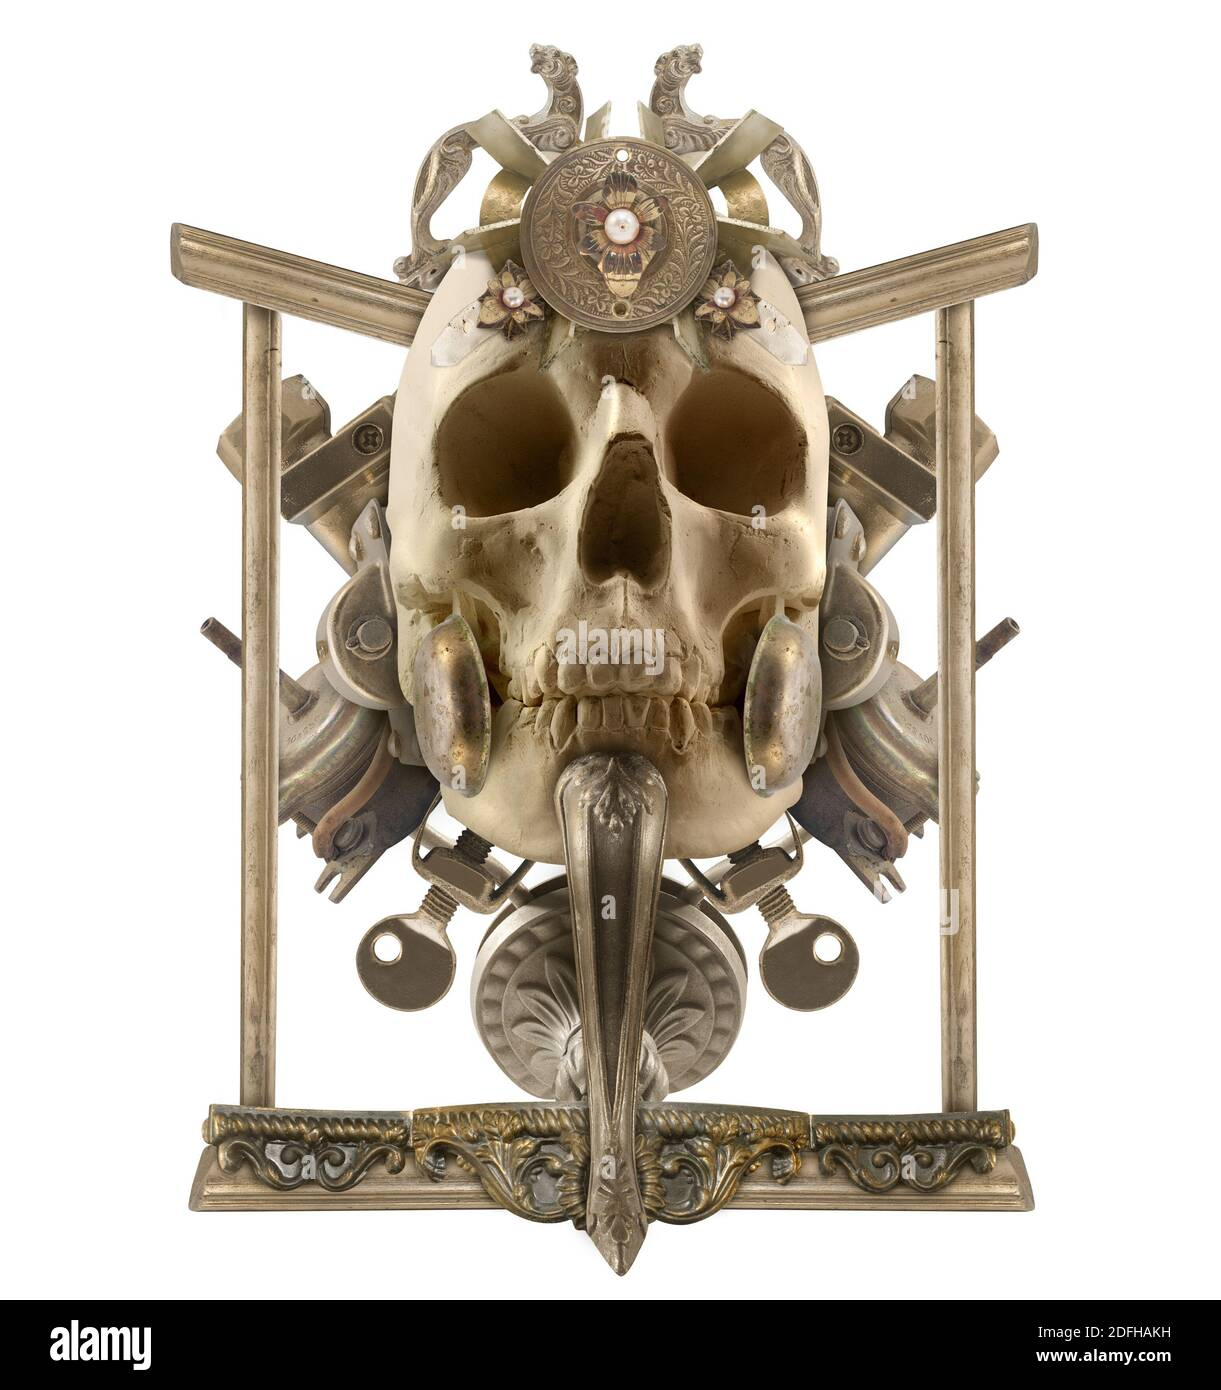 Isolated detailed copper skull composition with antique etched elements, border & jewelry on white background. Stock Photo